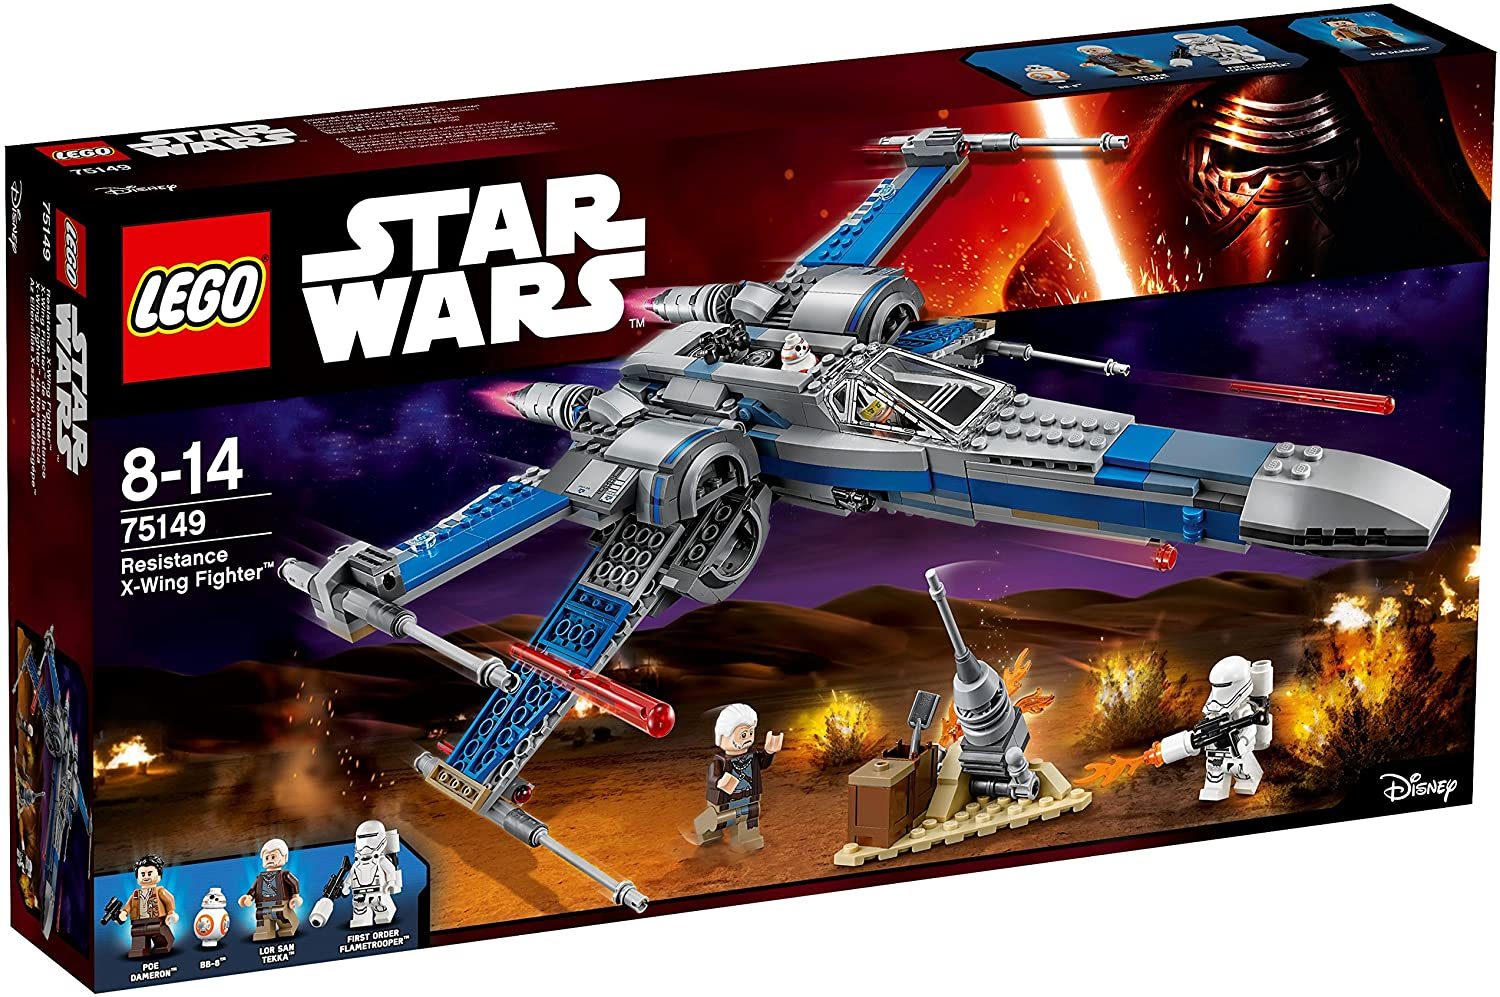 Modelo 75149 Resistance X-Wing Fighter